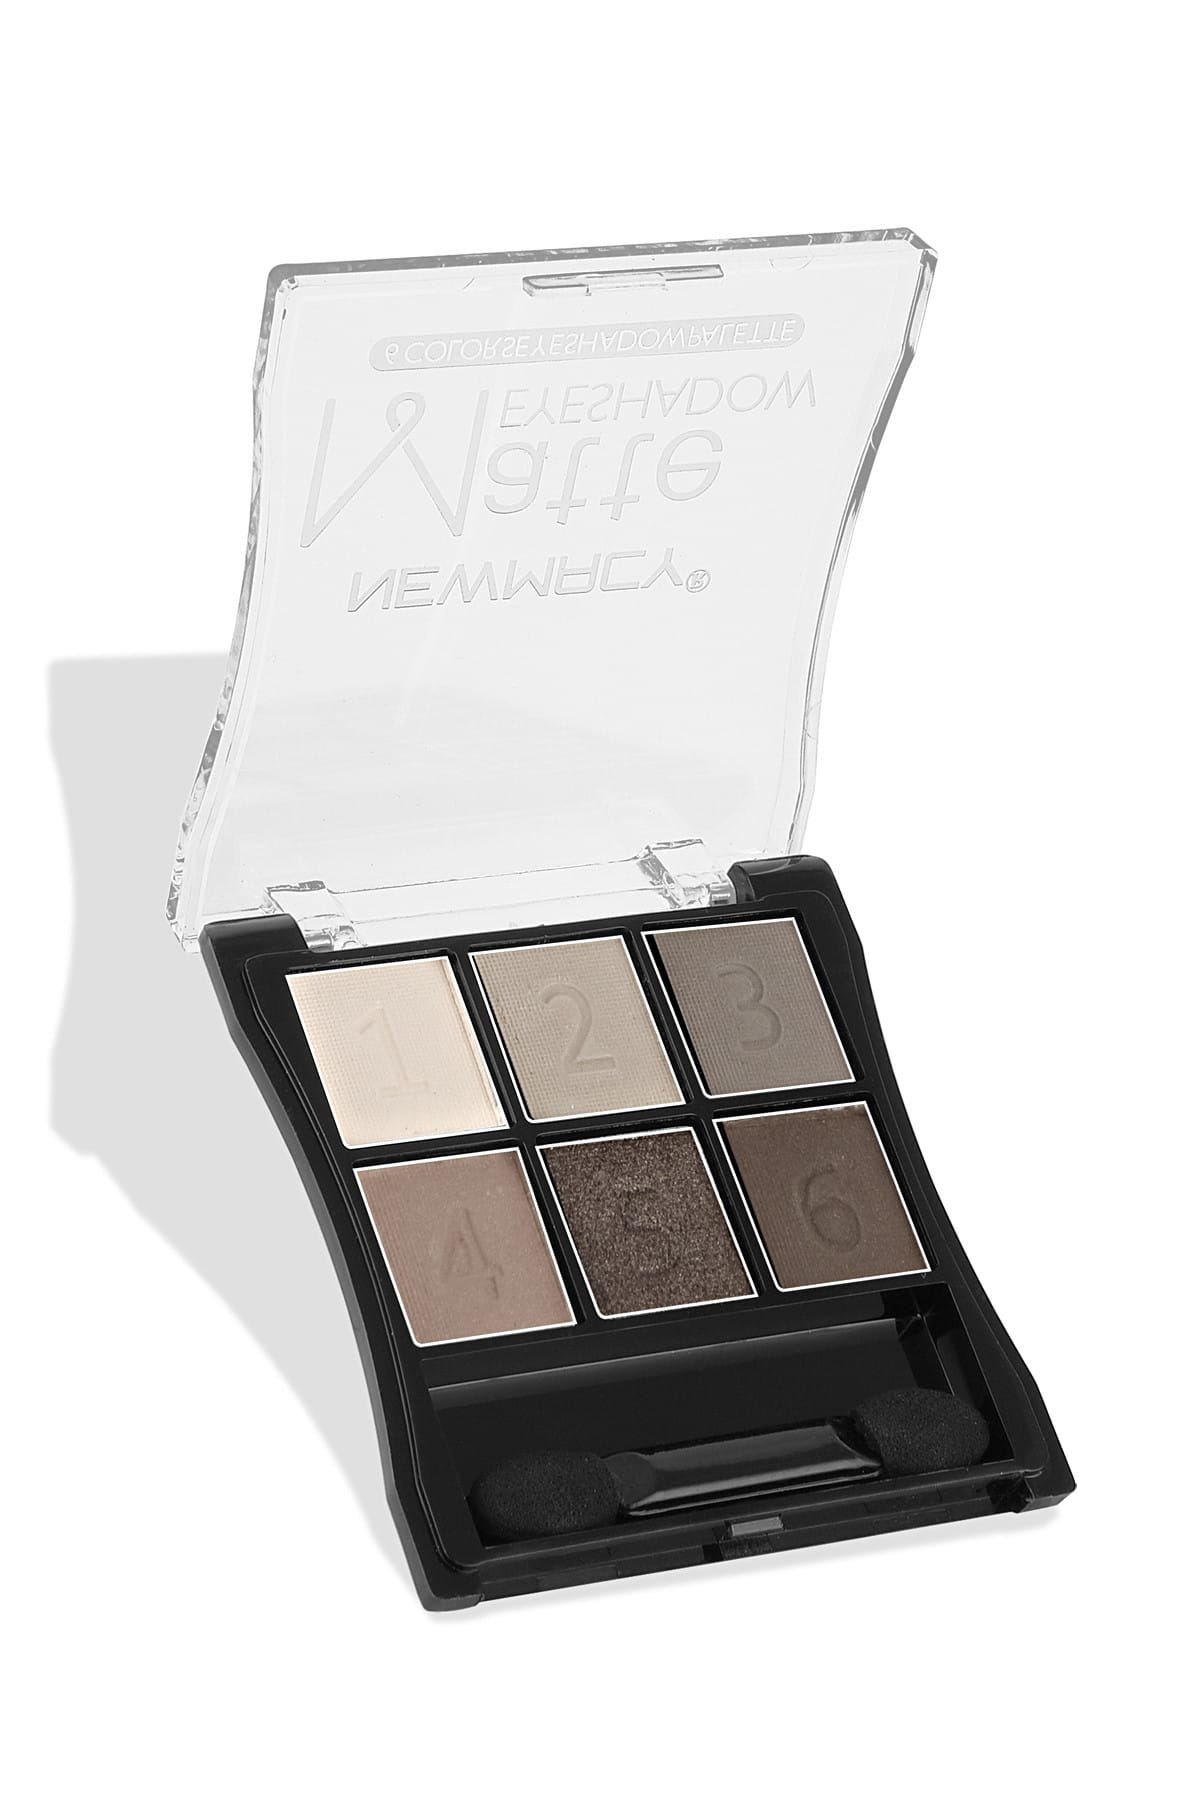 Newmacy 6'lı Göz Farı Paleti - 6 Colors Eyeshadow Palette 01 8681702001971 1